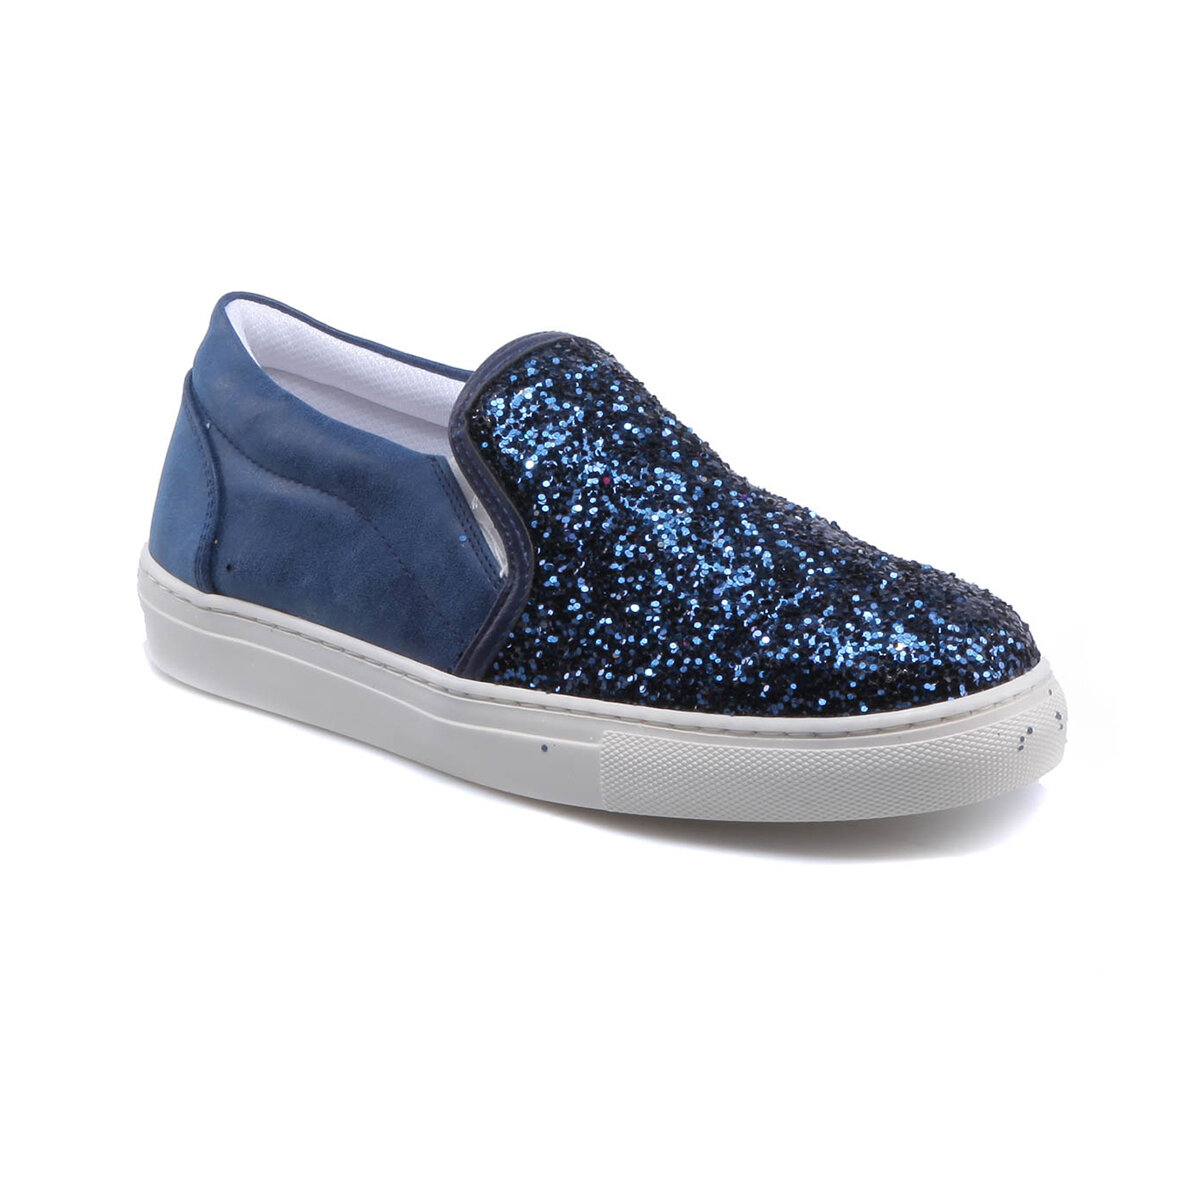 FLO MA15 Navy Blue Women 'S Slip On JJ-Stiller